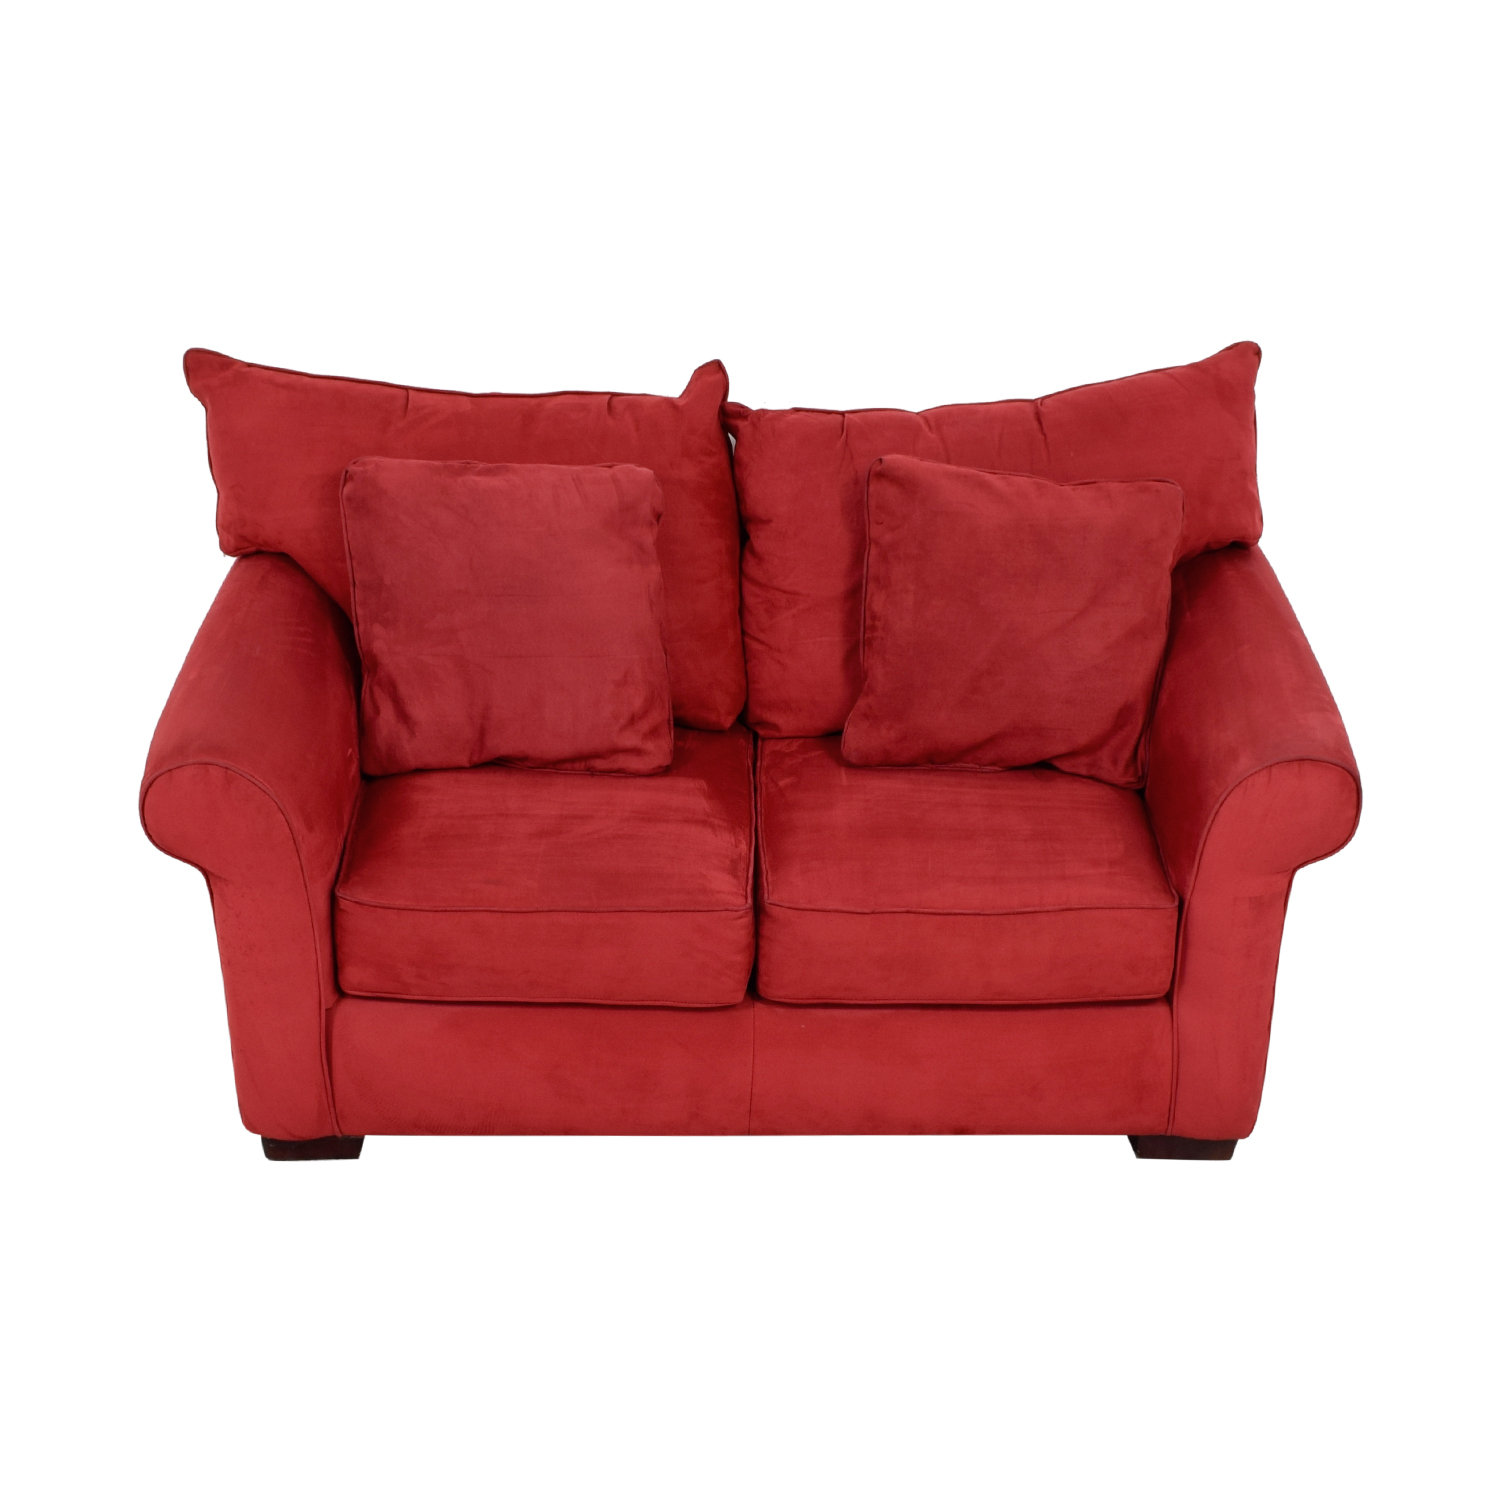 Jackson Furniture Jackson Furniture Red Two-Cushion Loveseat Sofas